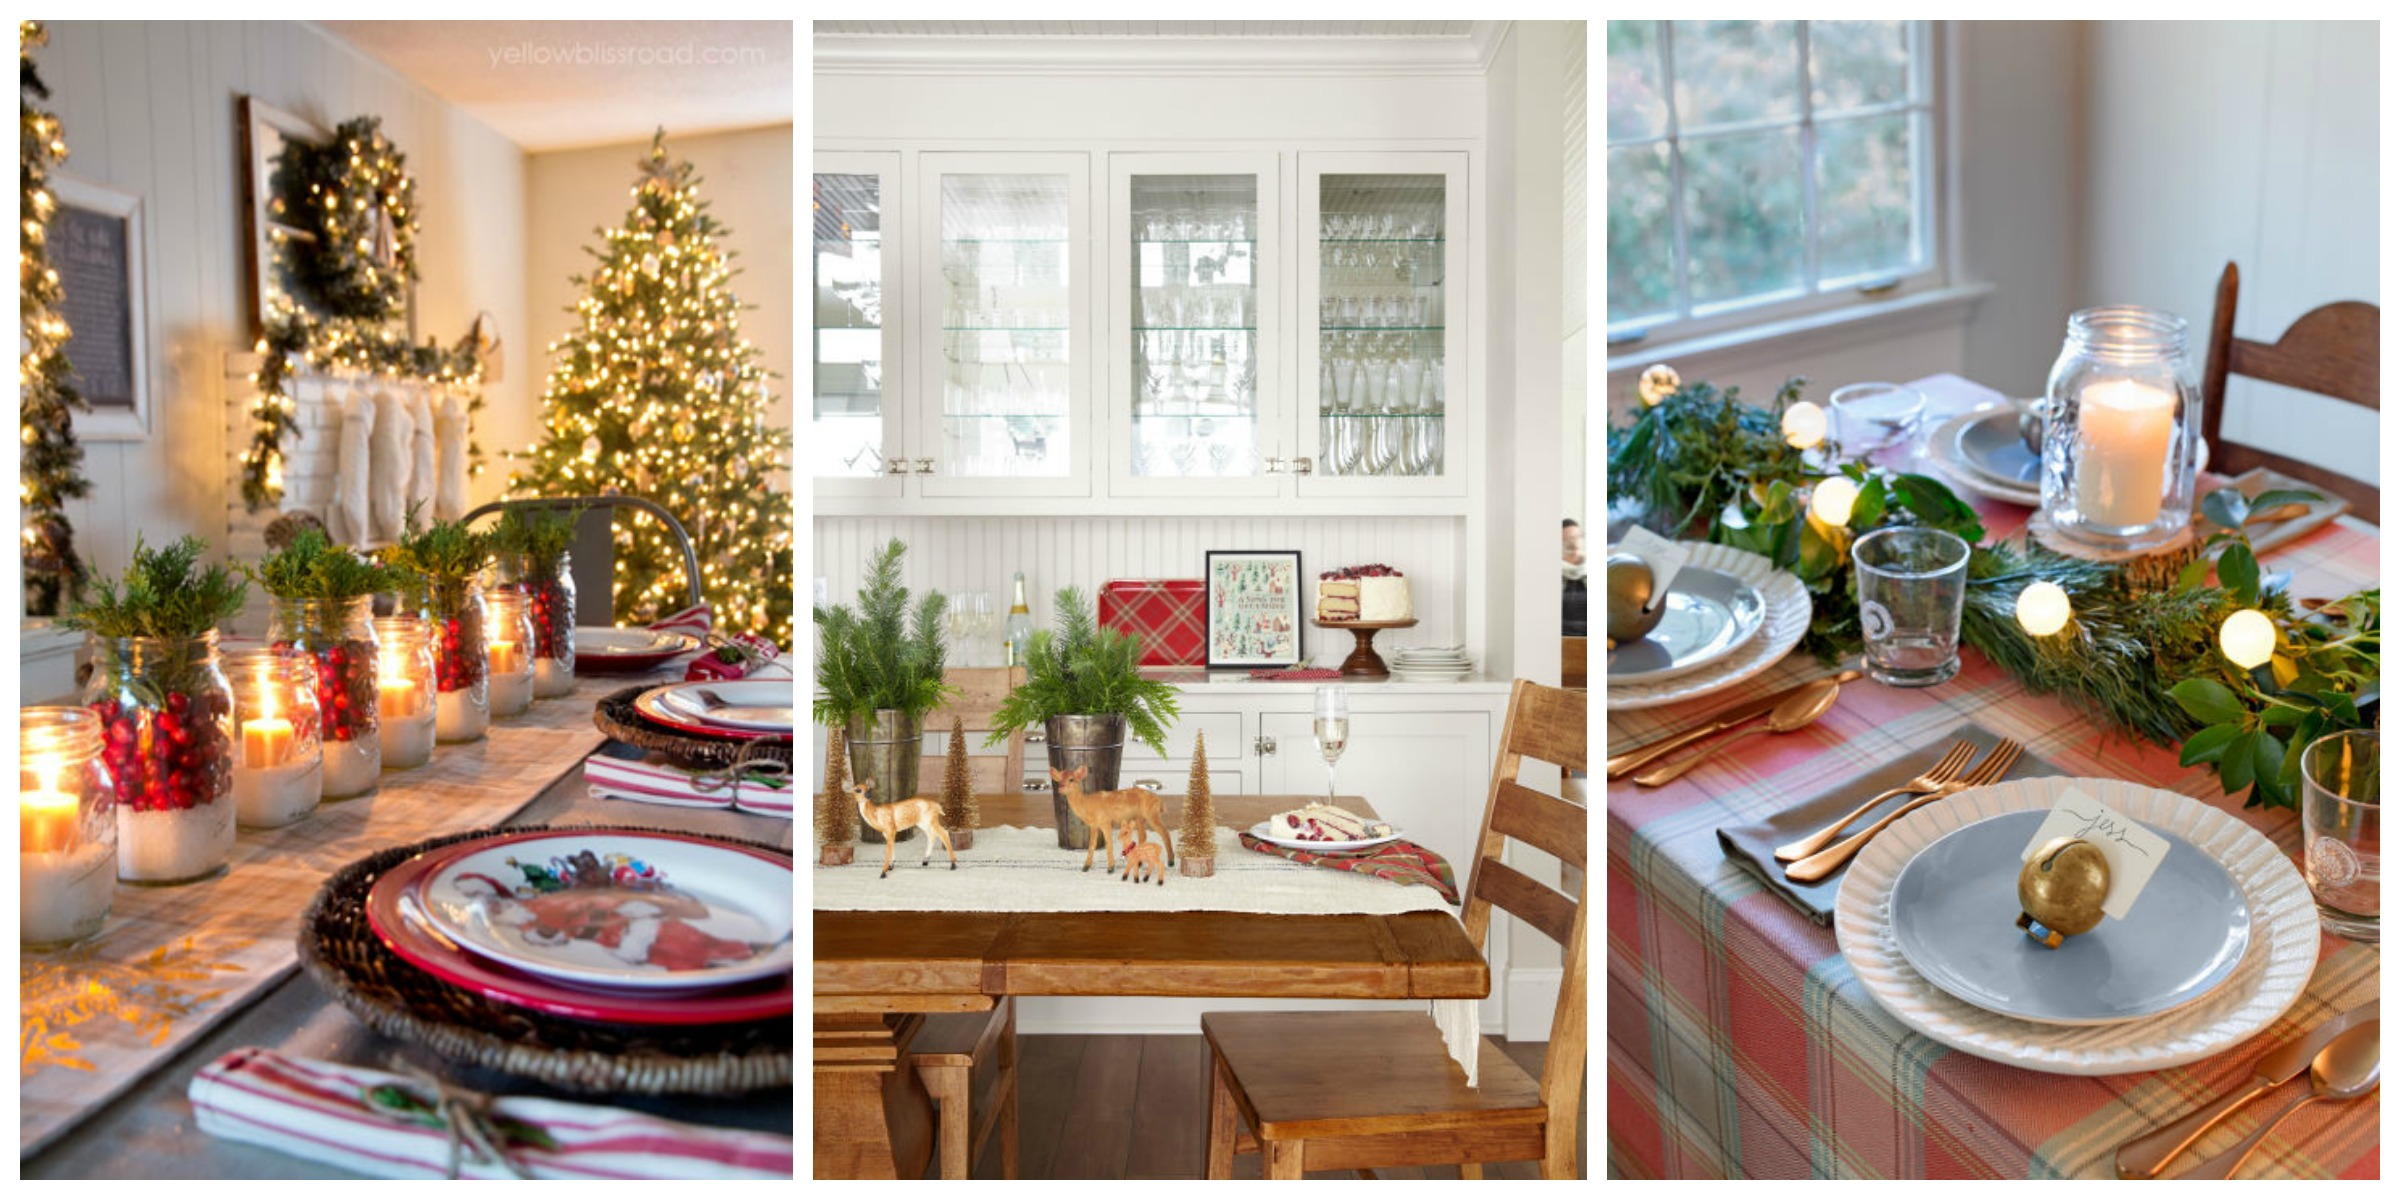 39 Christmas Table Settings Decorations And Centerpieces